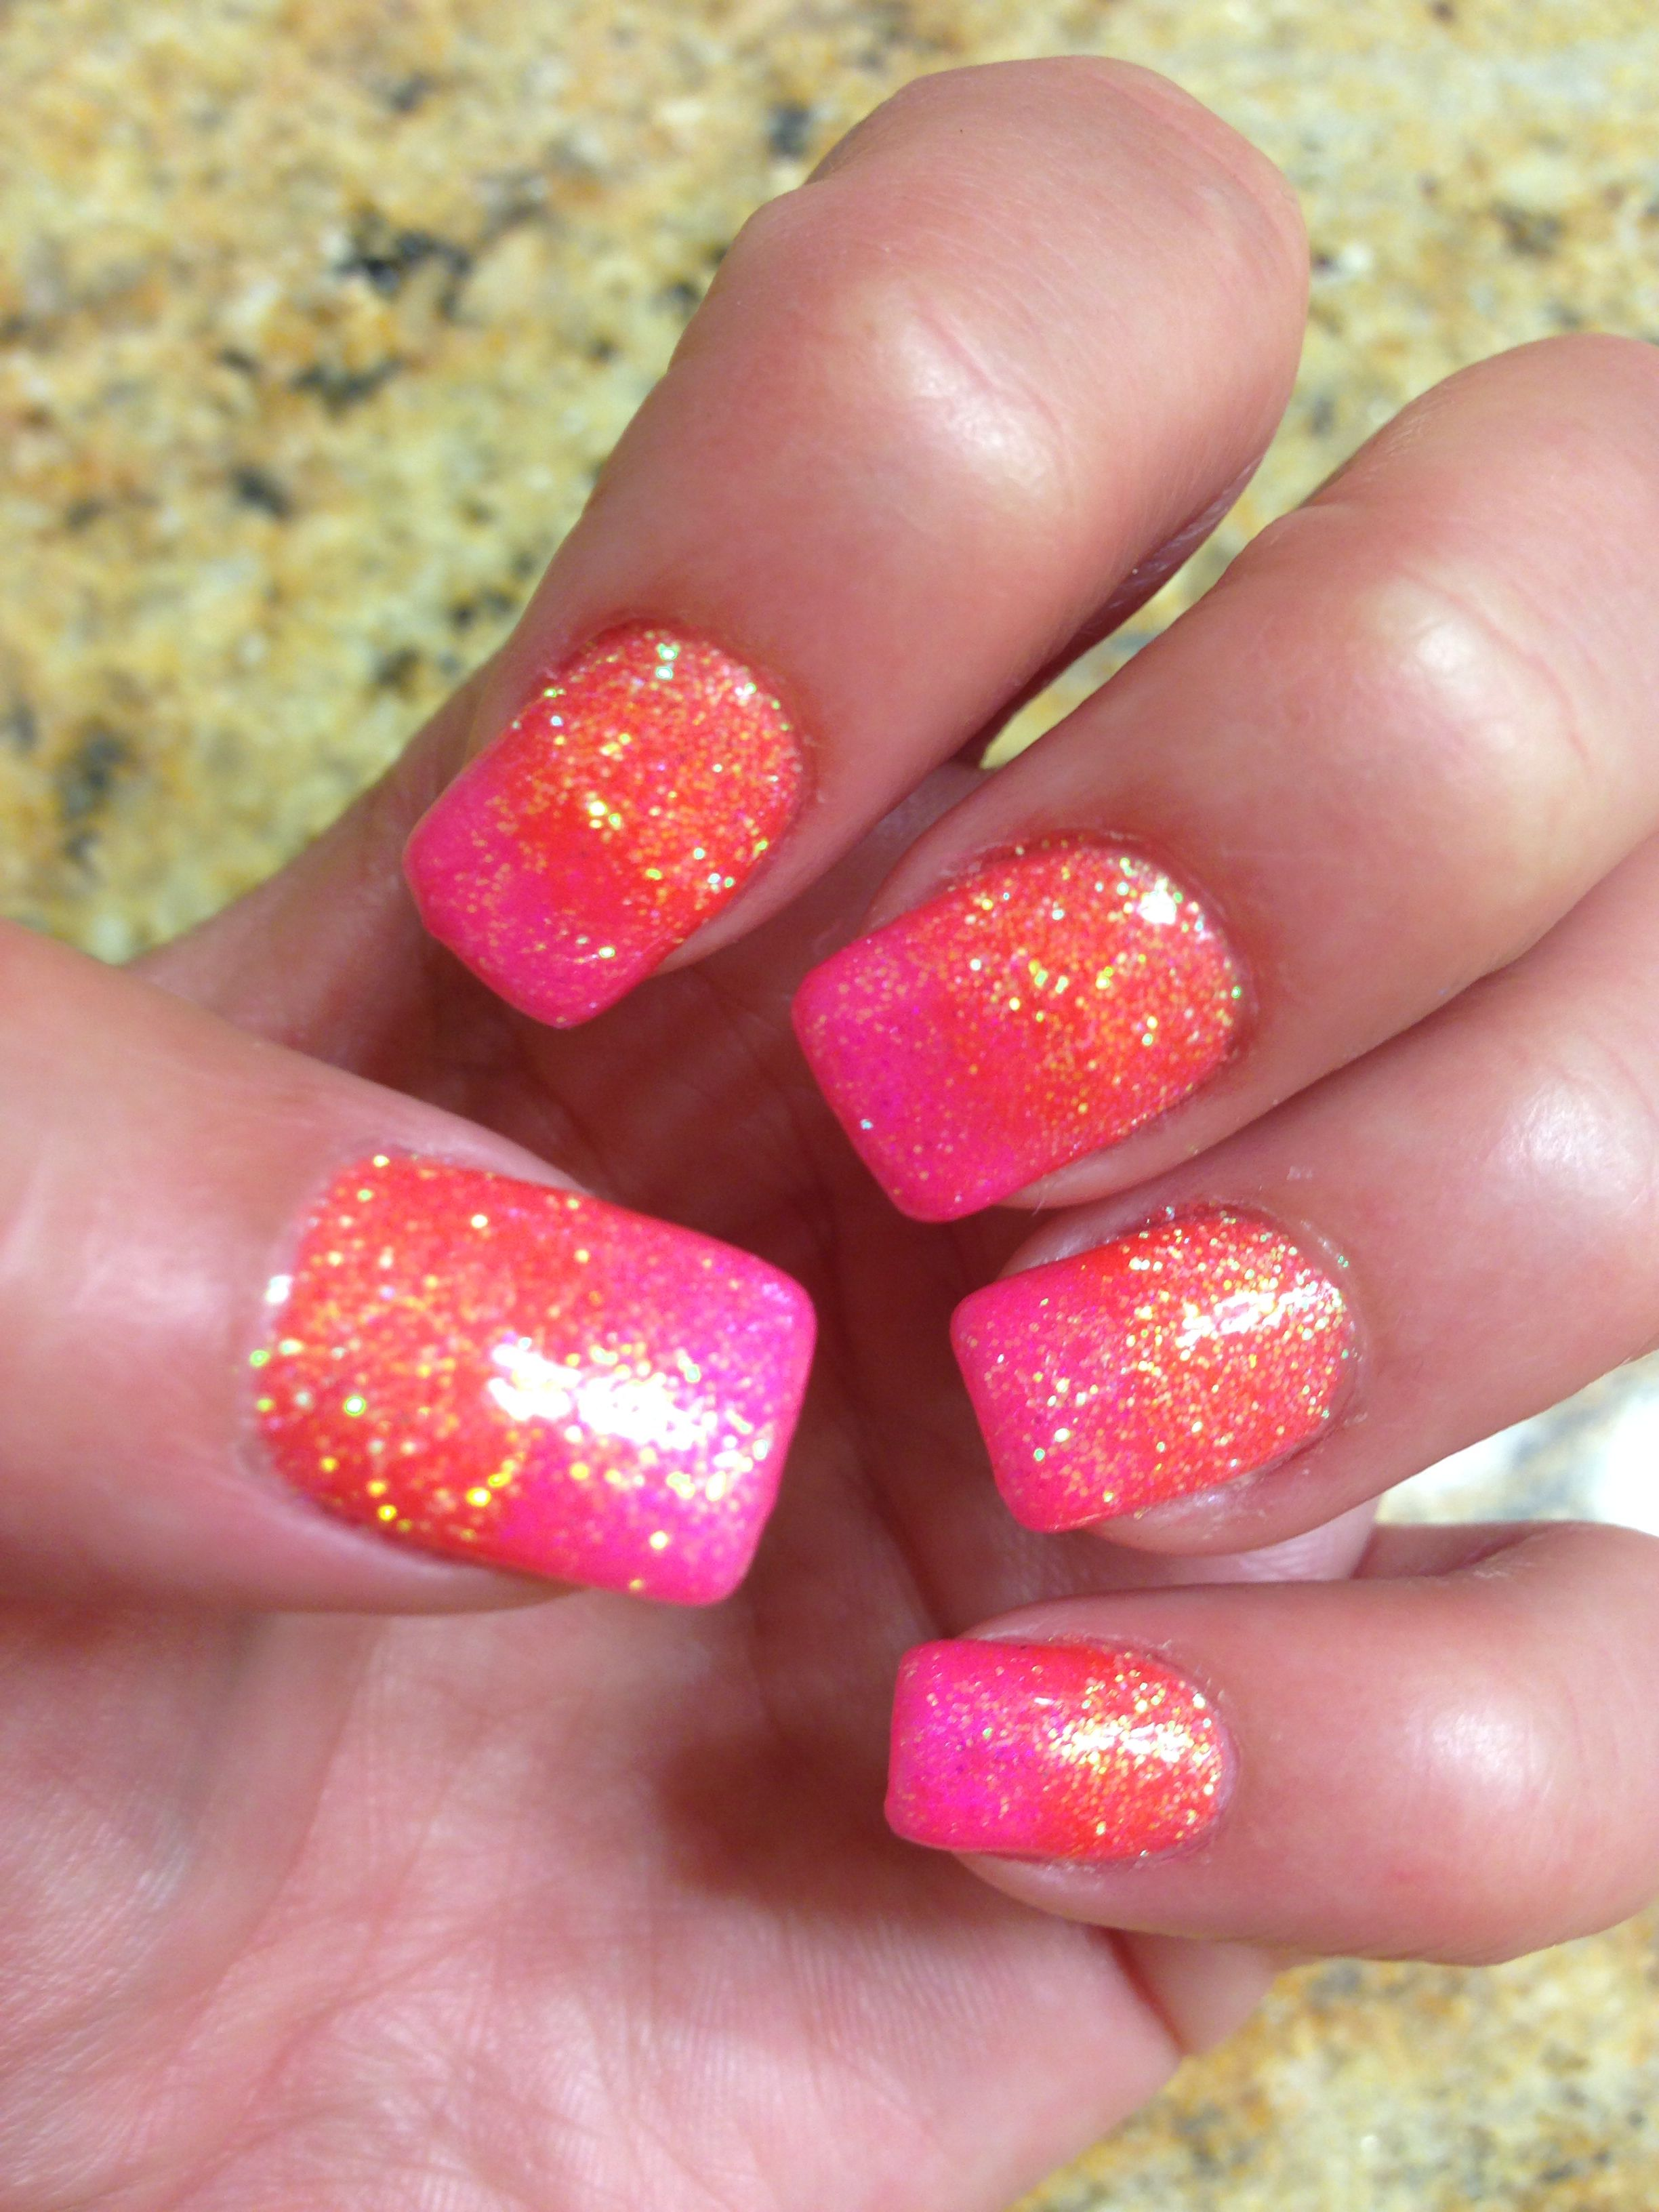 Summer Nails By Tanya Phillips Coral Colors Pink And Orange Gel Polish Shellac Glitter Glows Under Black Light Swag Too Cute Bright Costal